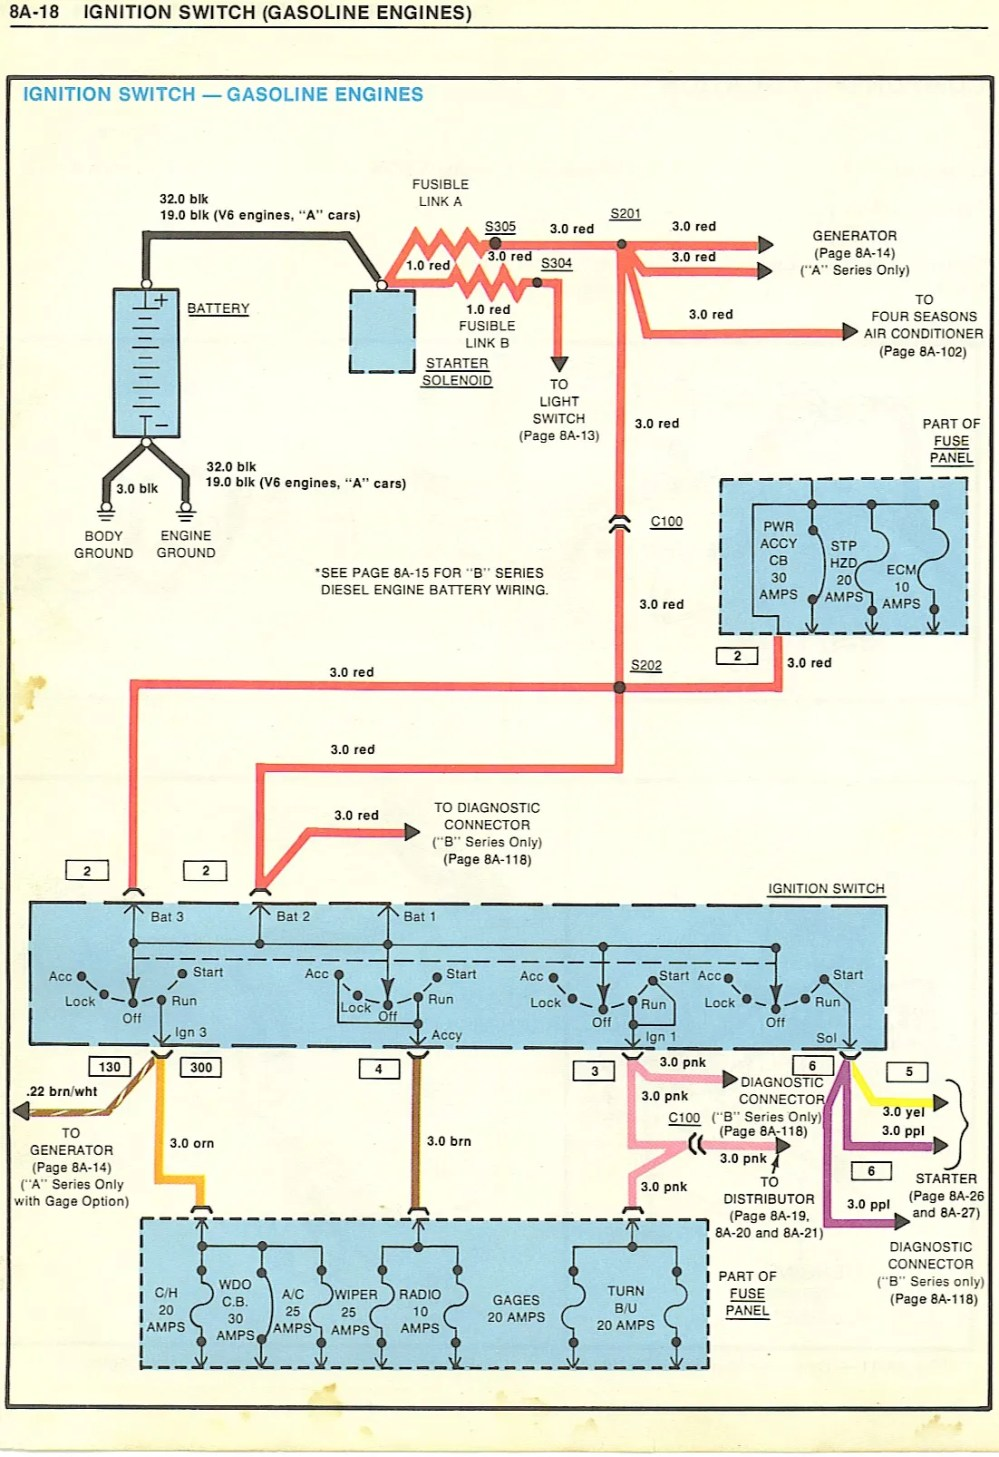 medium resolution of 1984 gm ignition wiring diagram wiring diagram explained rh 11 10 corruptionincoal org gm delco remy hei distributor wiring diagram chevy hei distributor